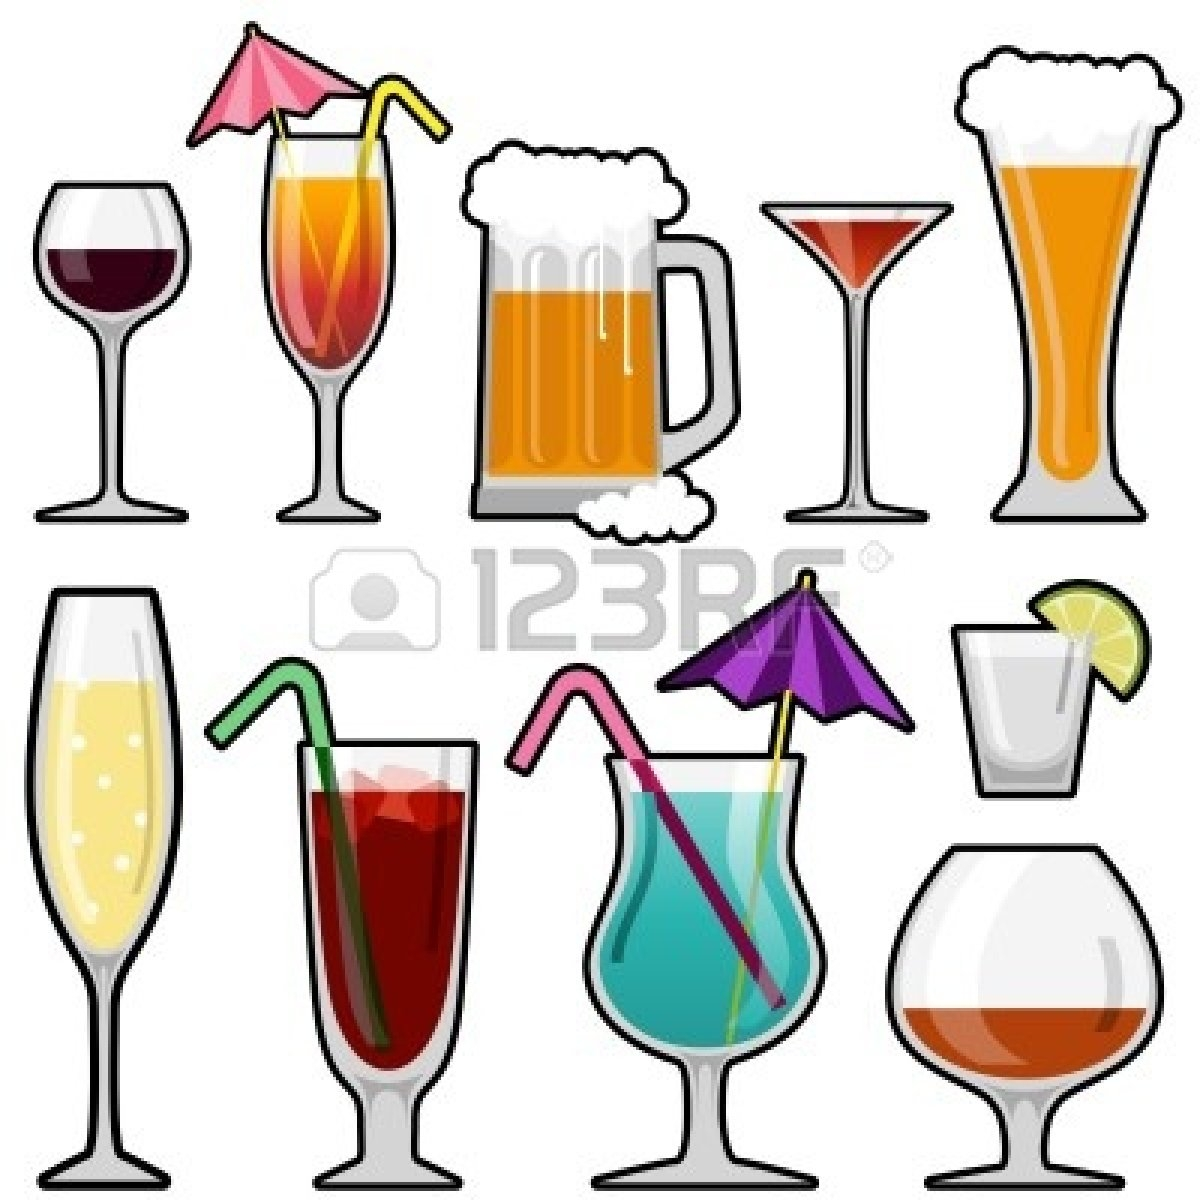 Alcohol clipart alcoholism. New design digital collection